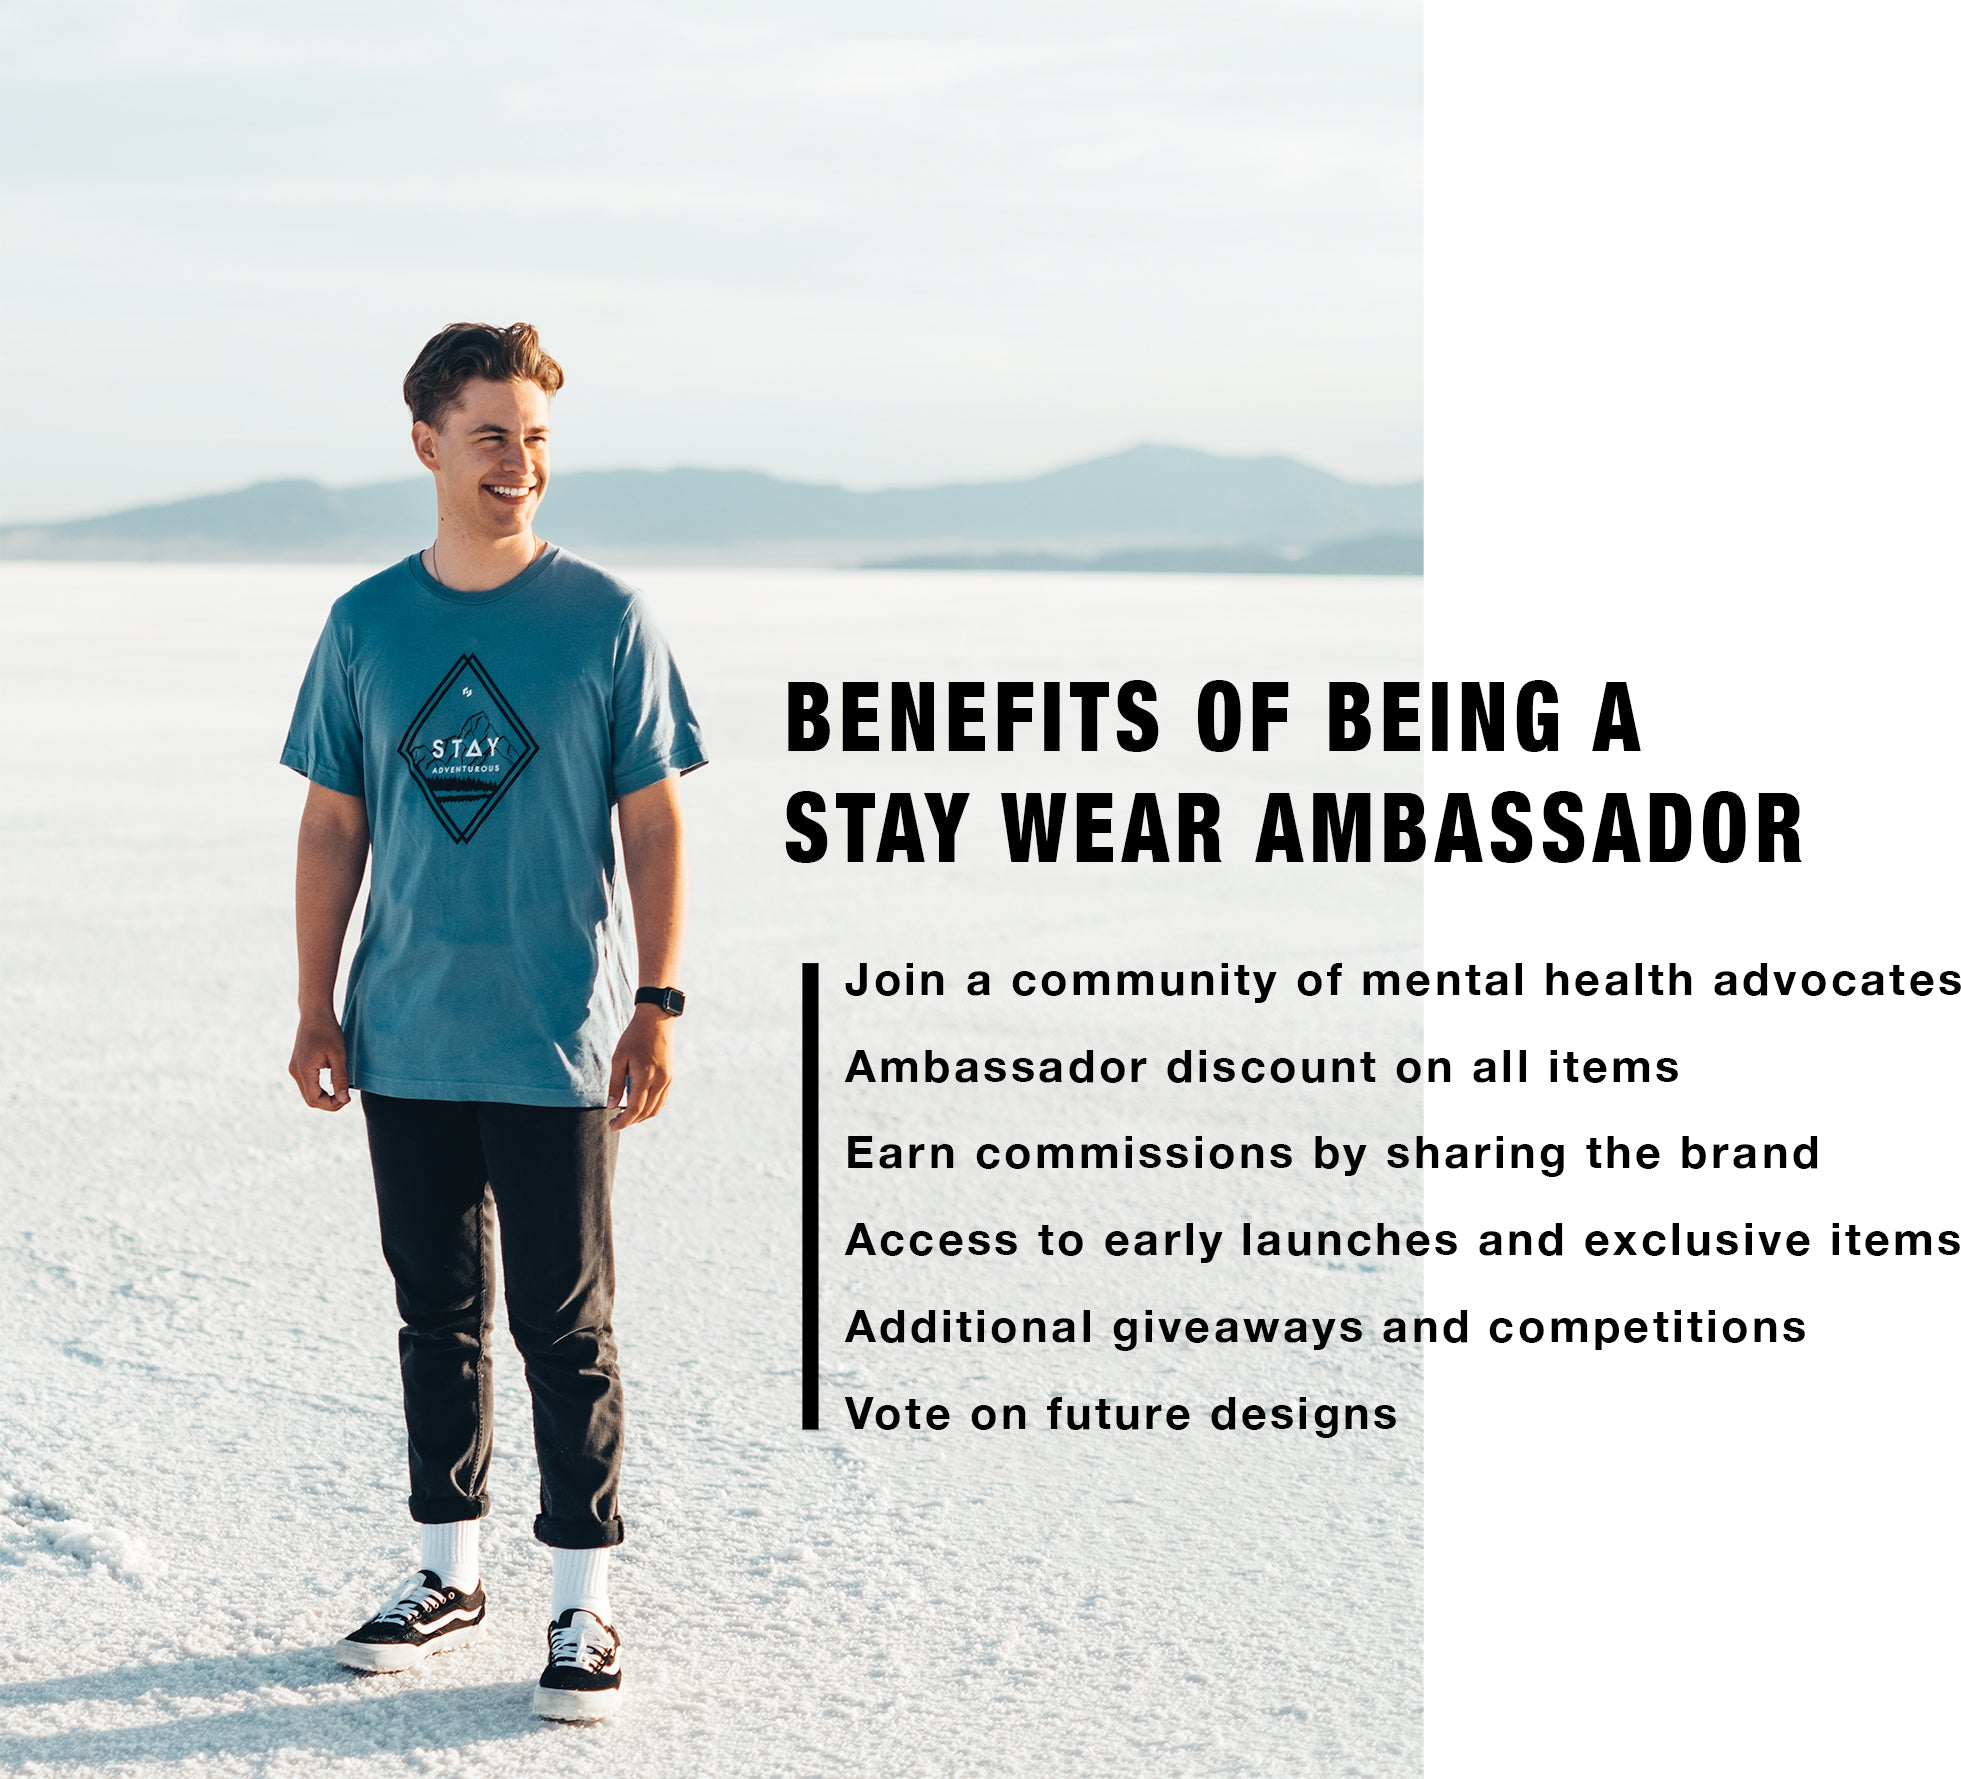 Benefits of being a Stay Wear ambassador